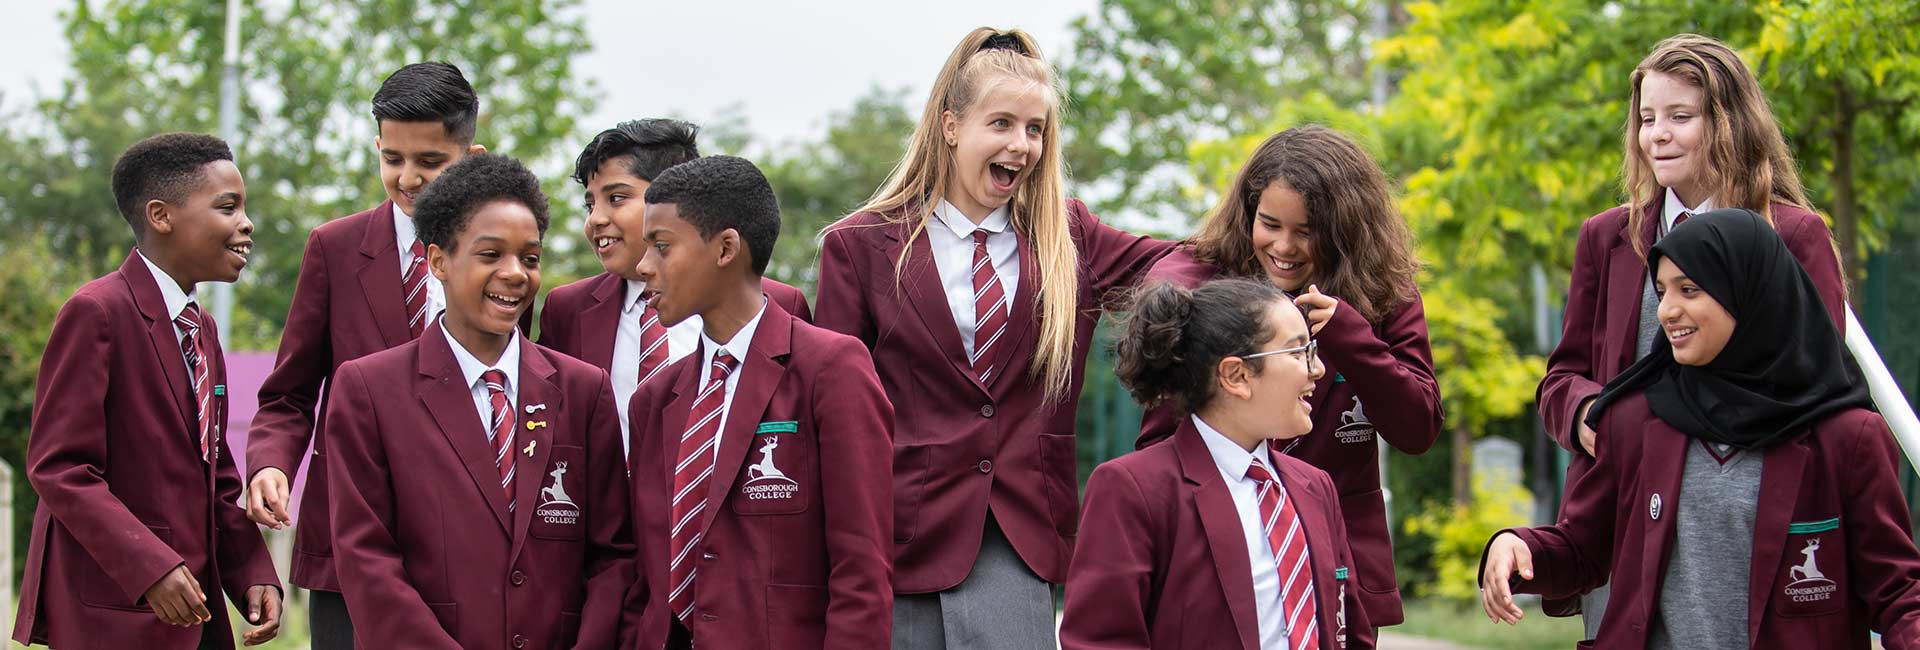 Conisborough College - Students Outside Smiling